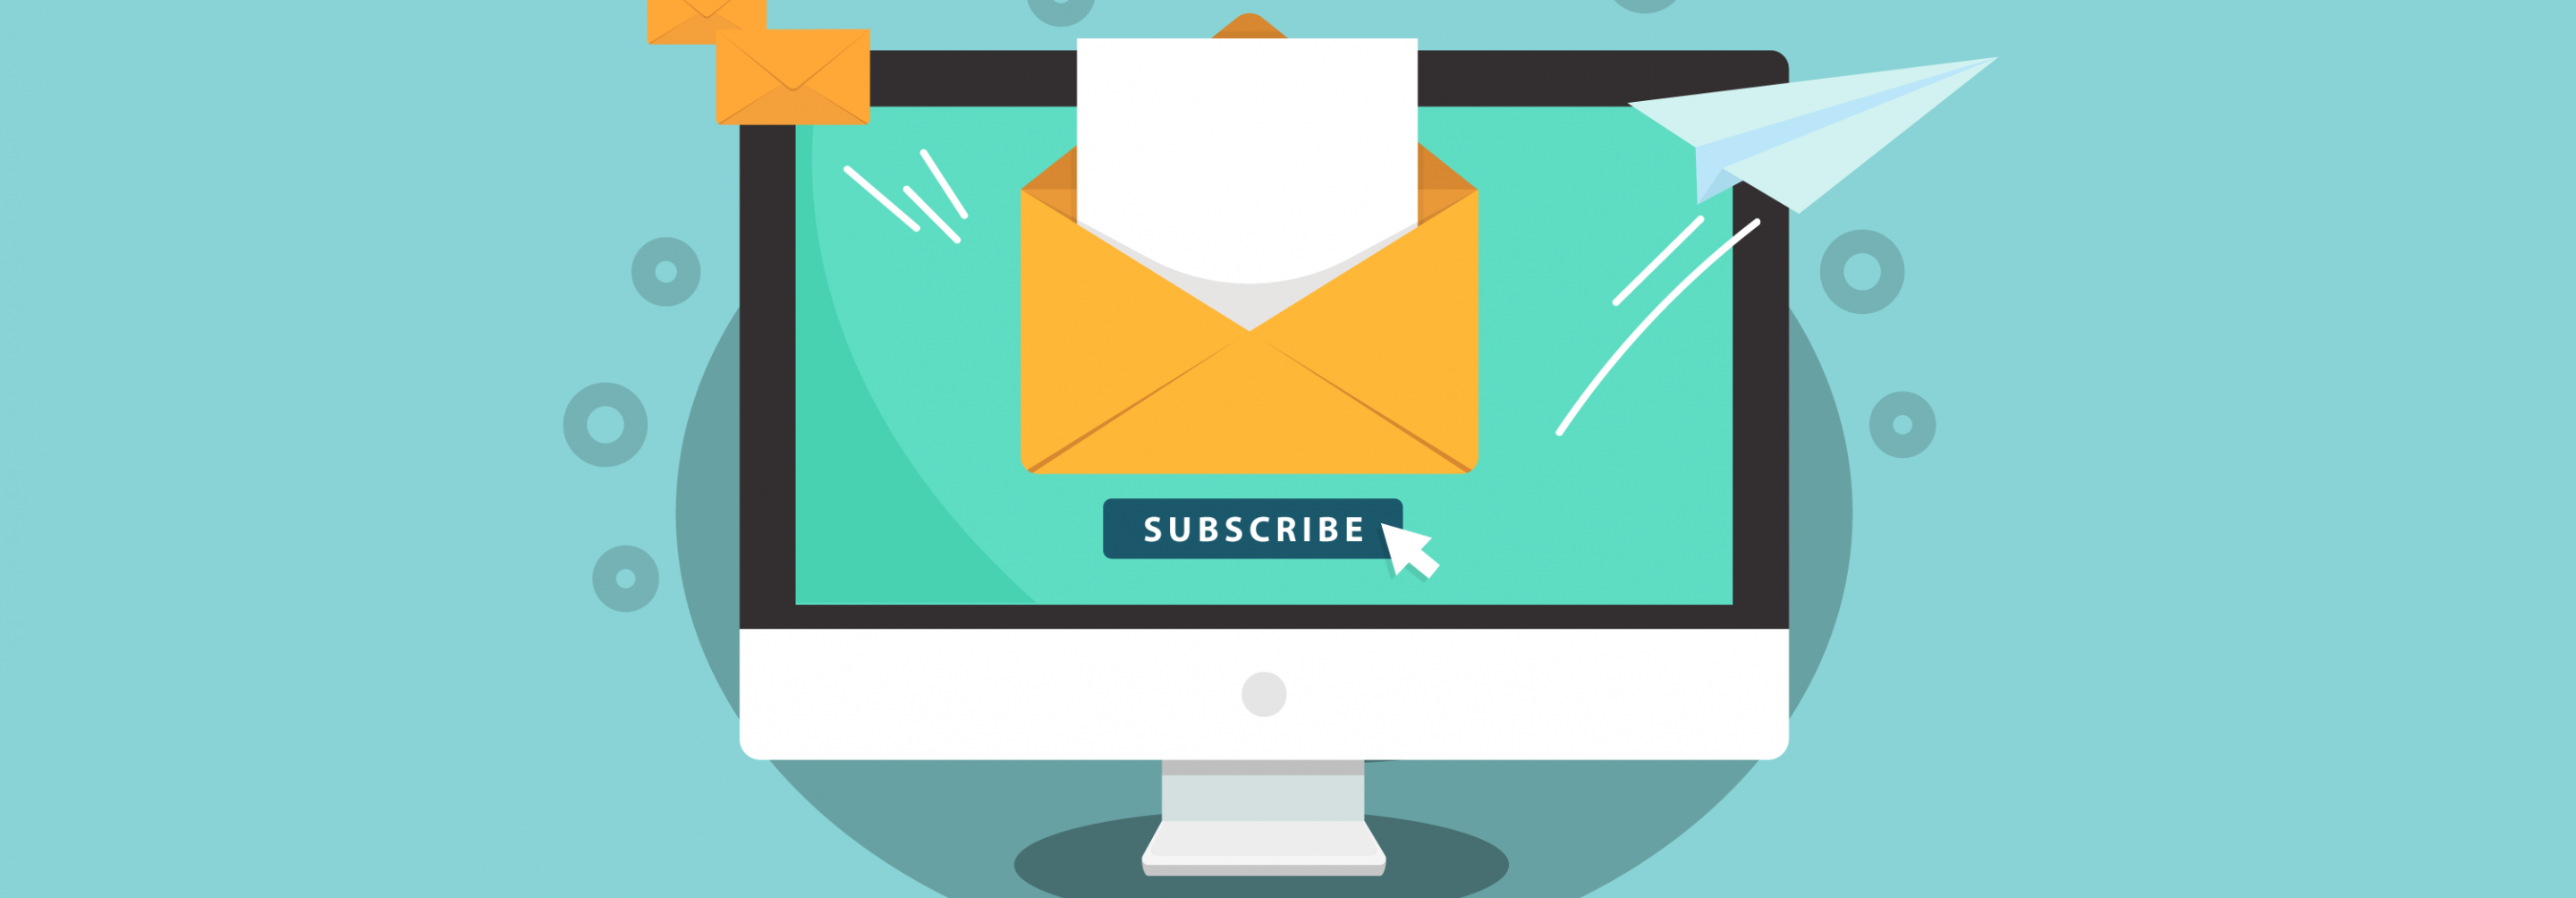 Illustration of a computer screen and Subscribe button with mail